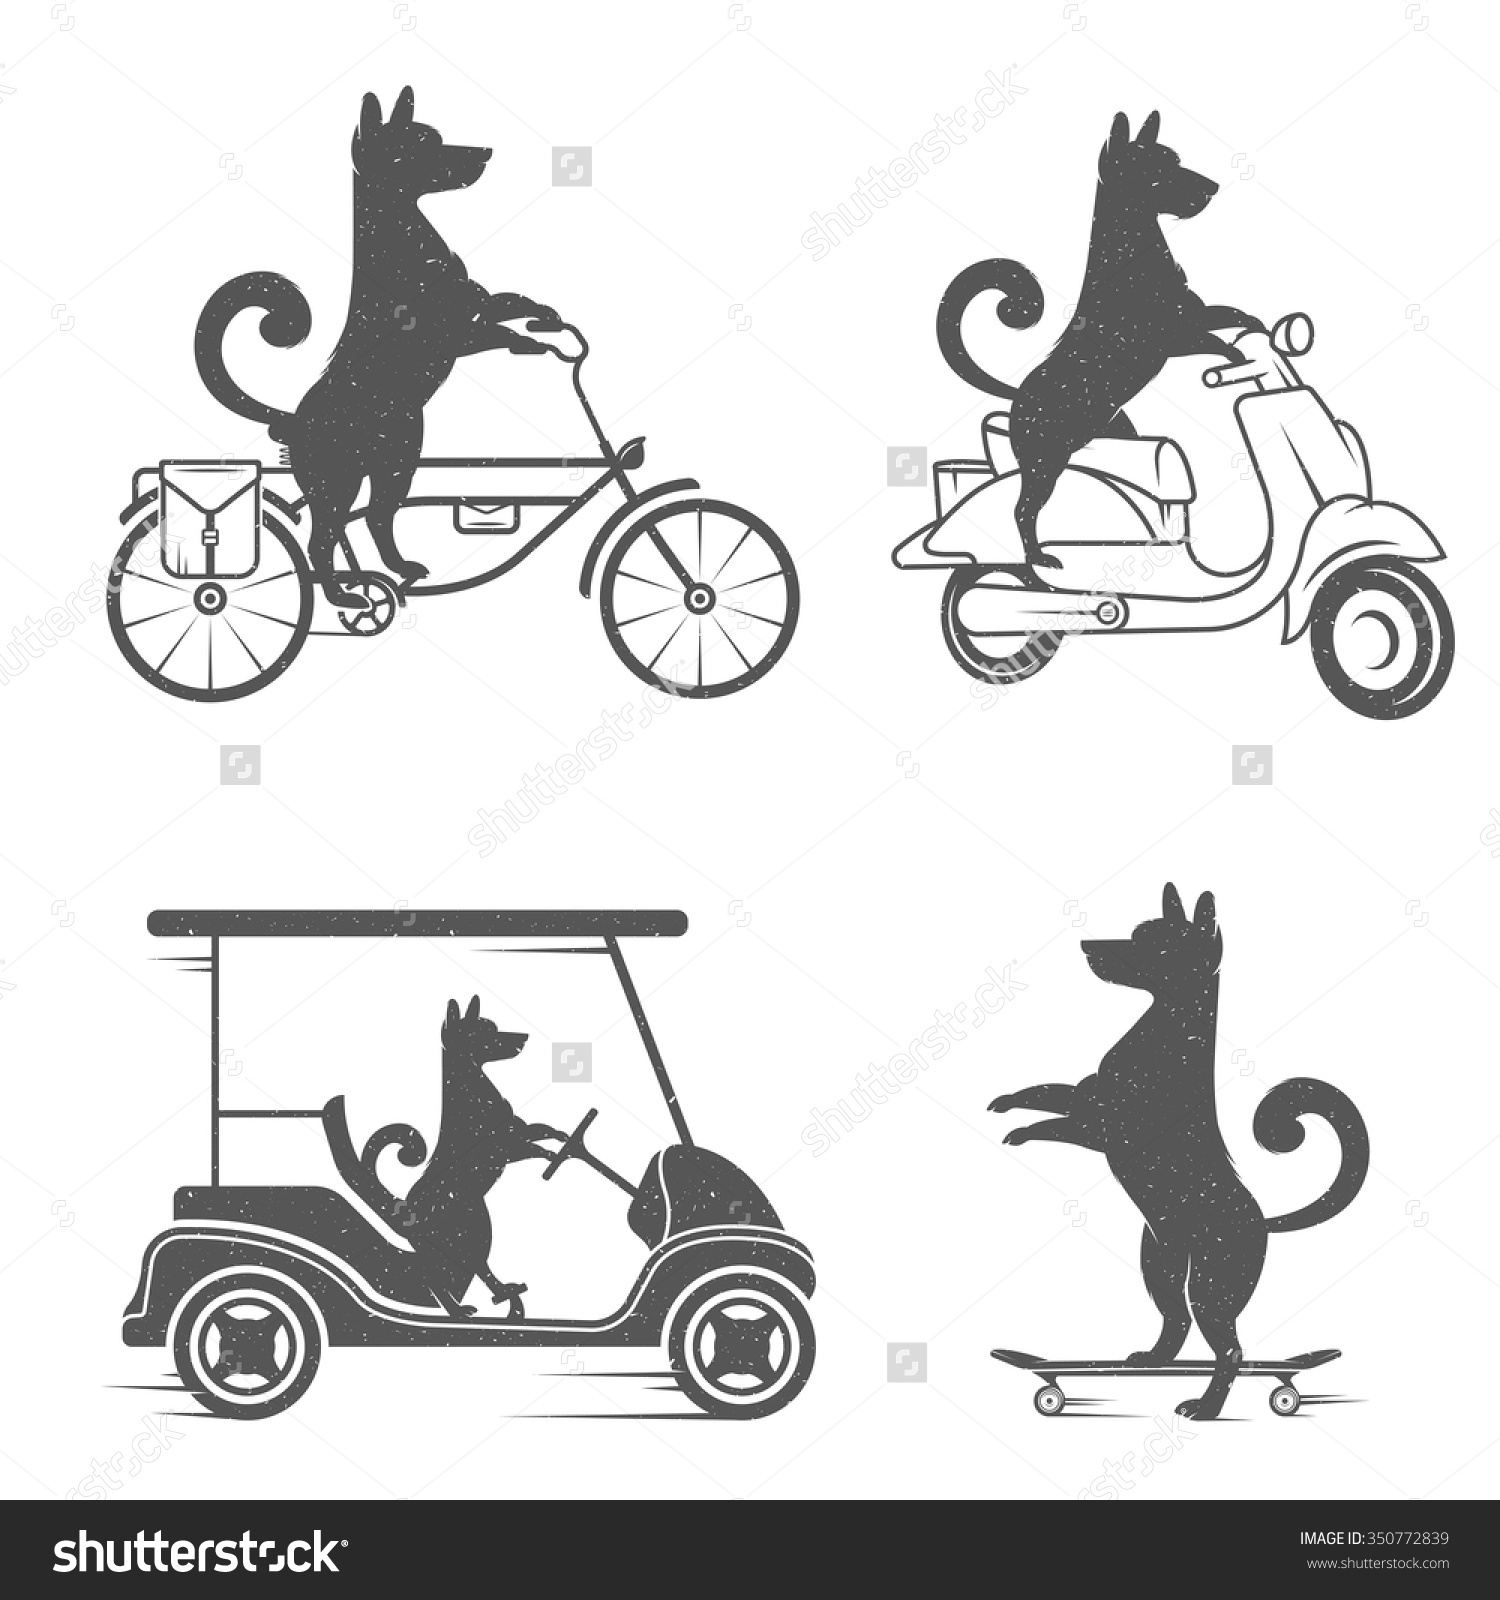 Vintage Illustration Fun Dog Grunge Effect Stock Vector 350772839.